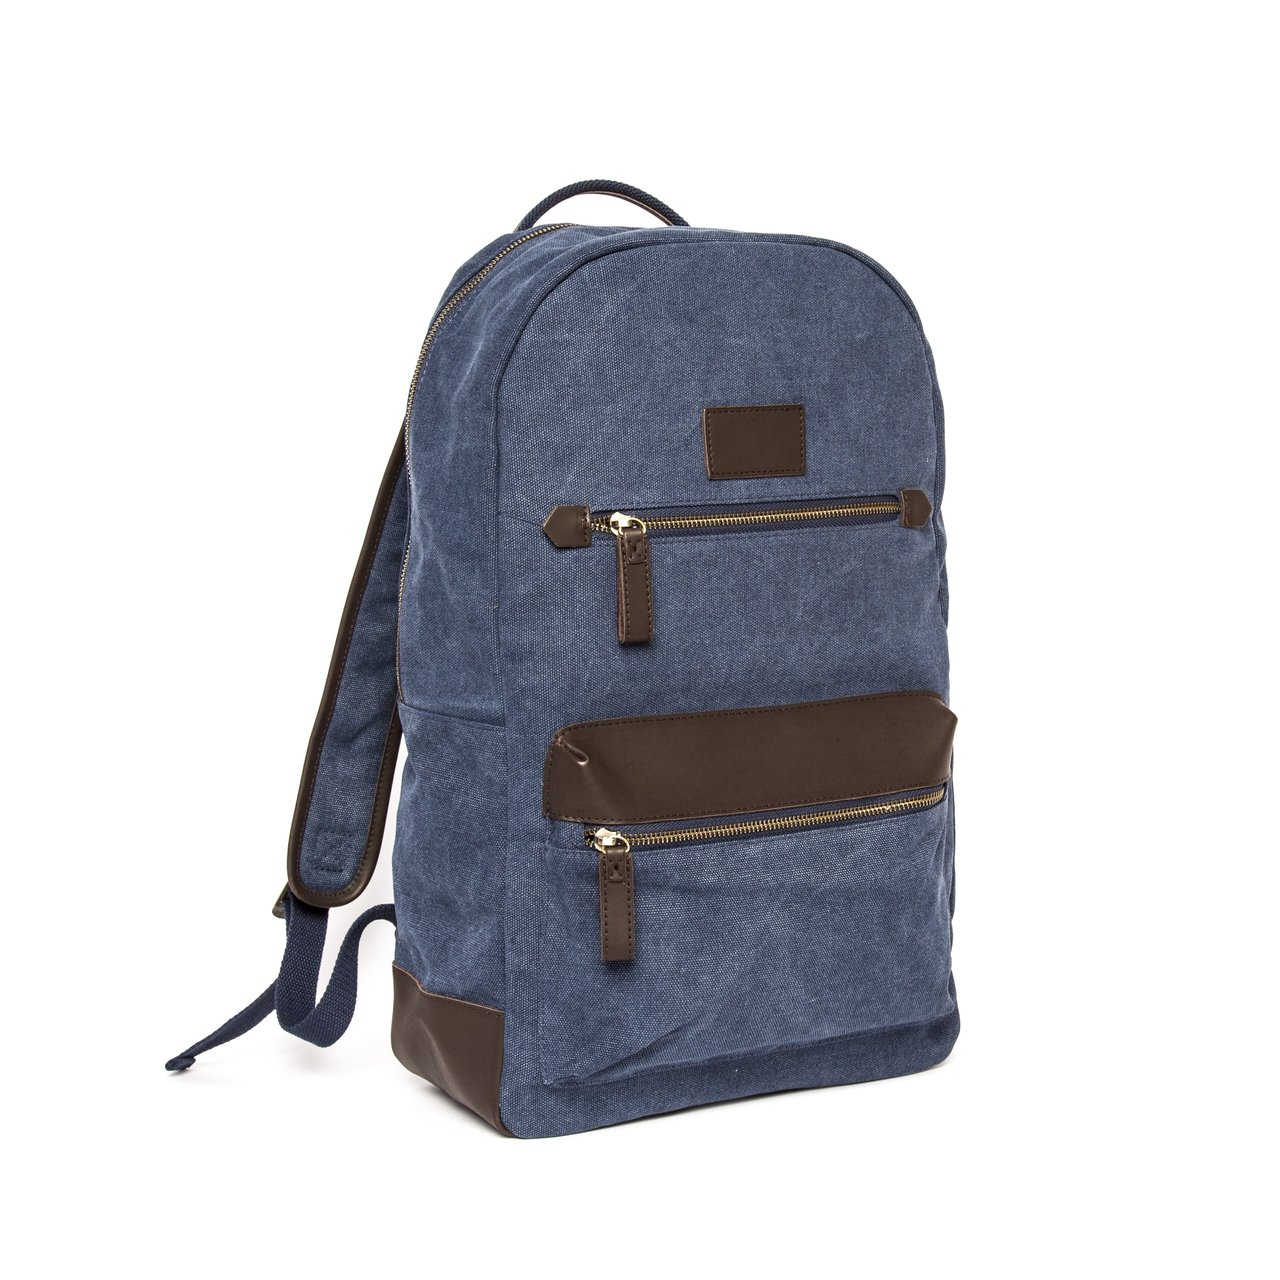 Excursion Backpack in Denim